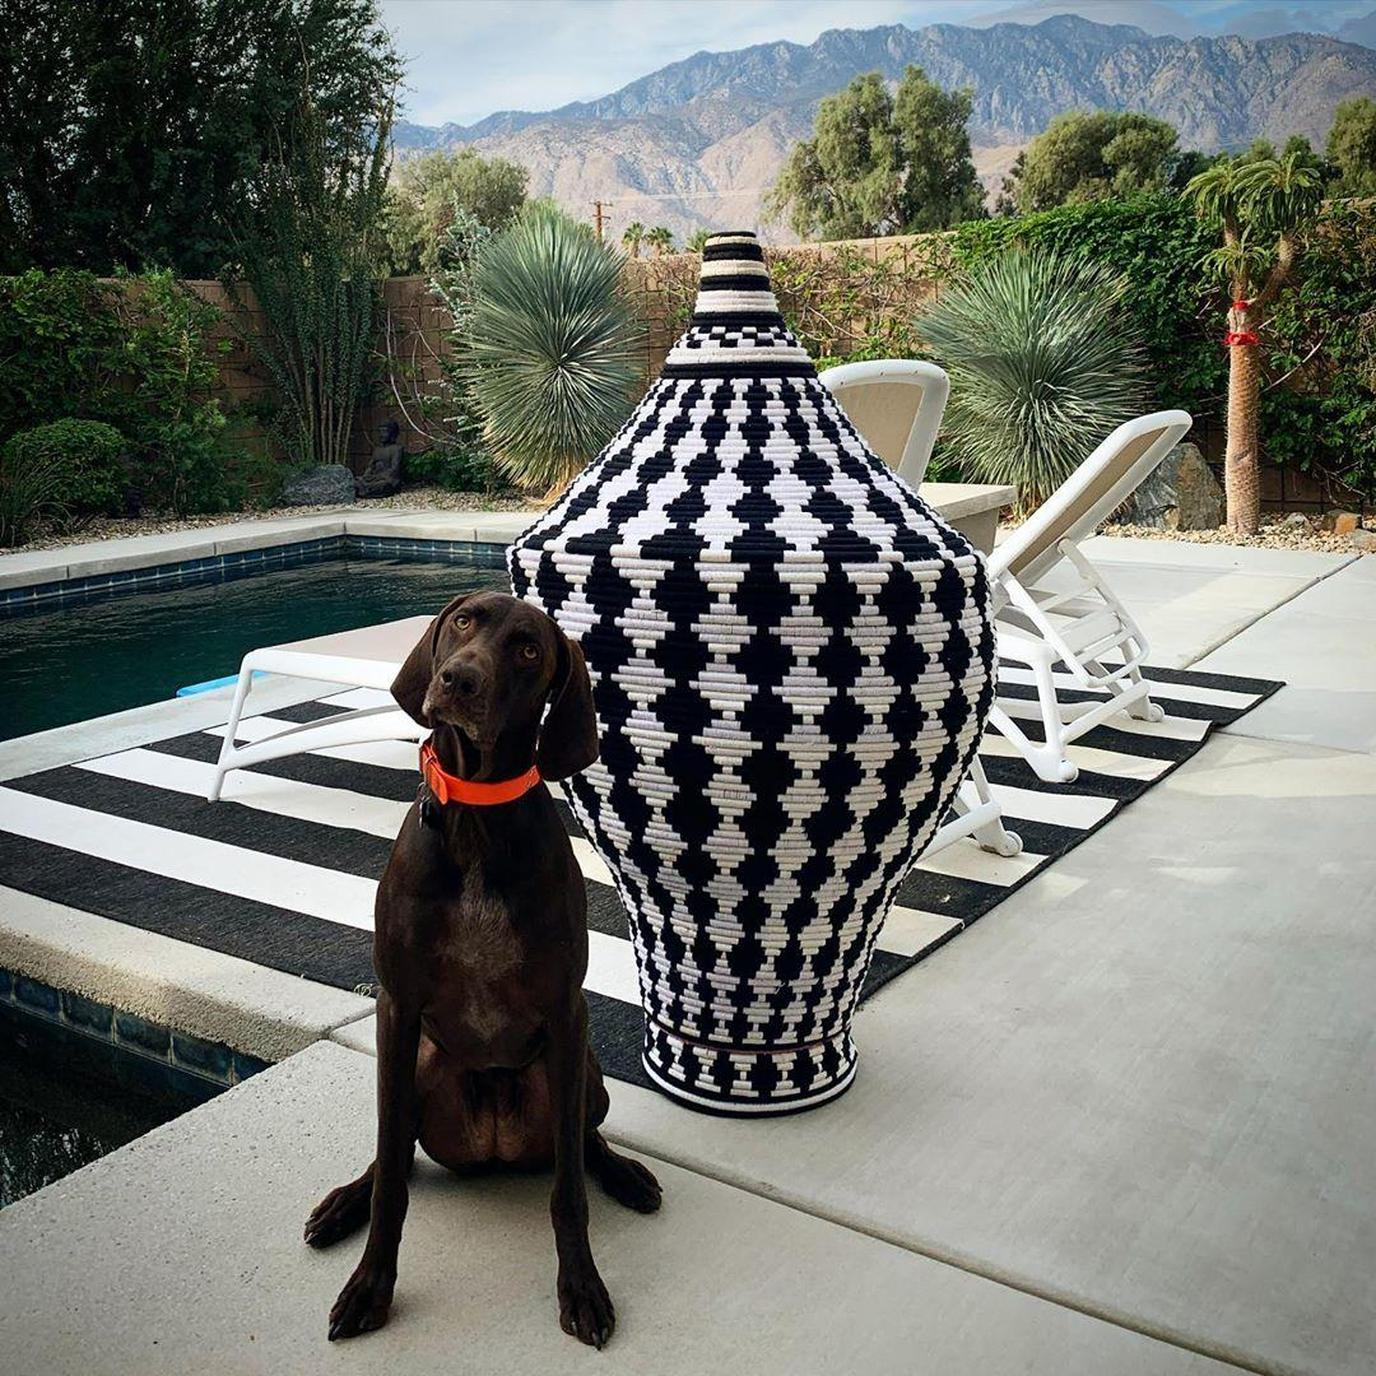 A Dog Sits Beside a Black and White Woven Urn in Pet-Friendly Palm Springs.